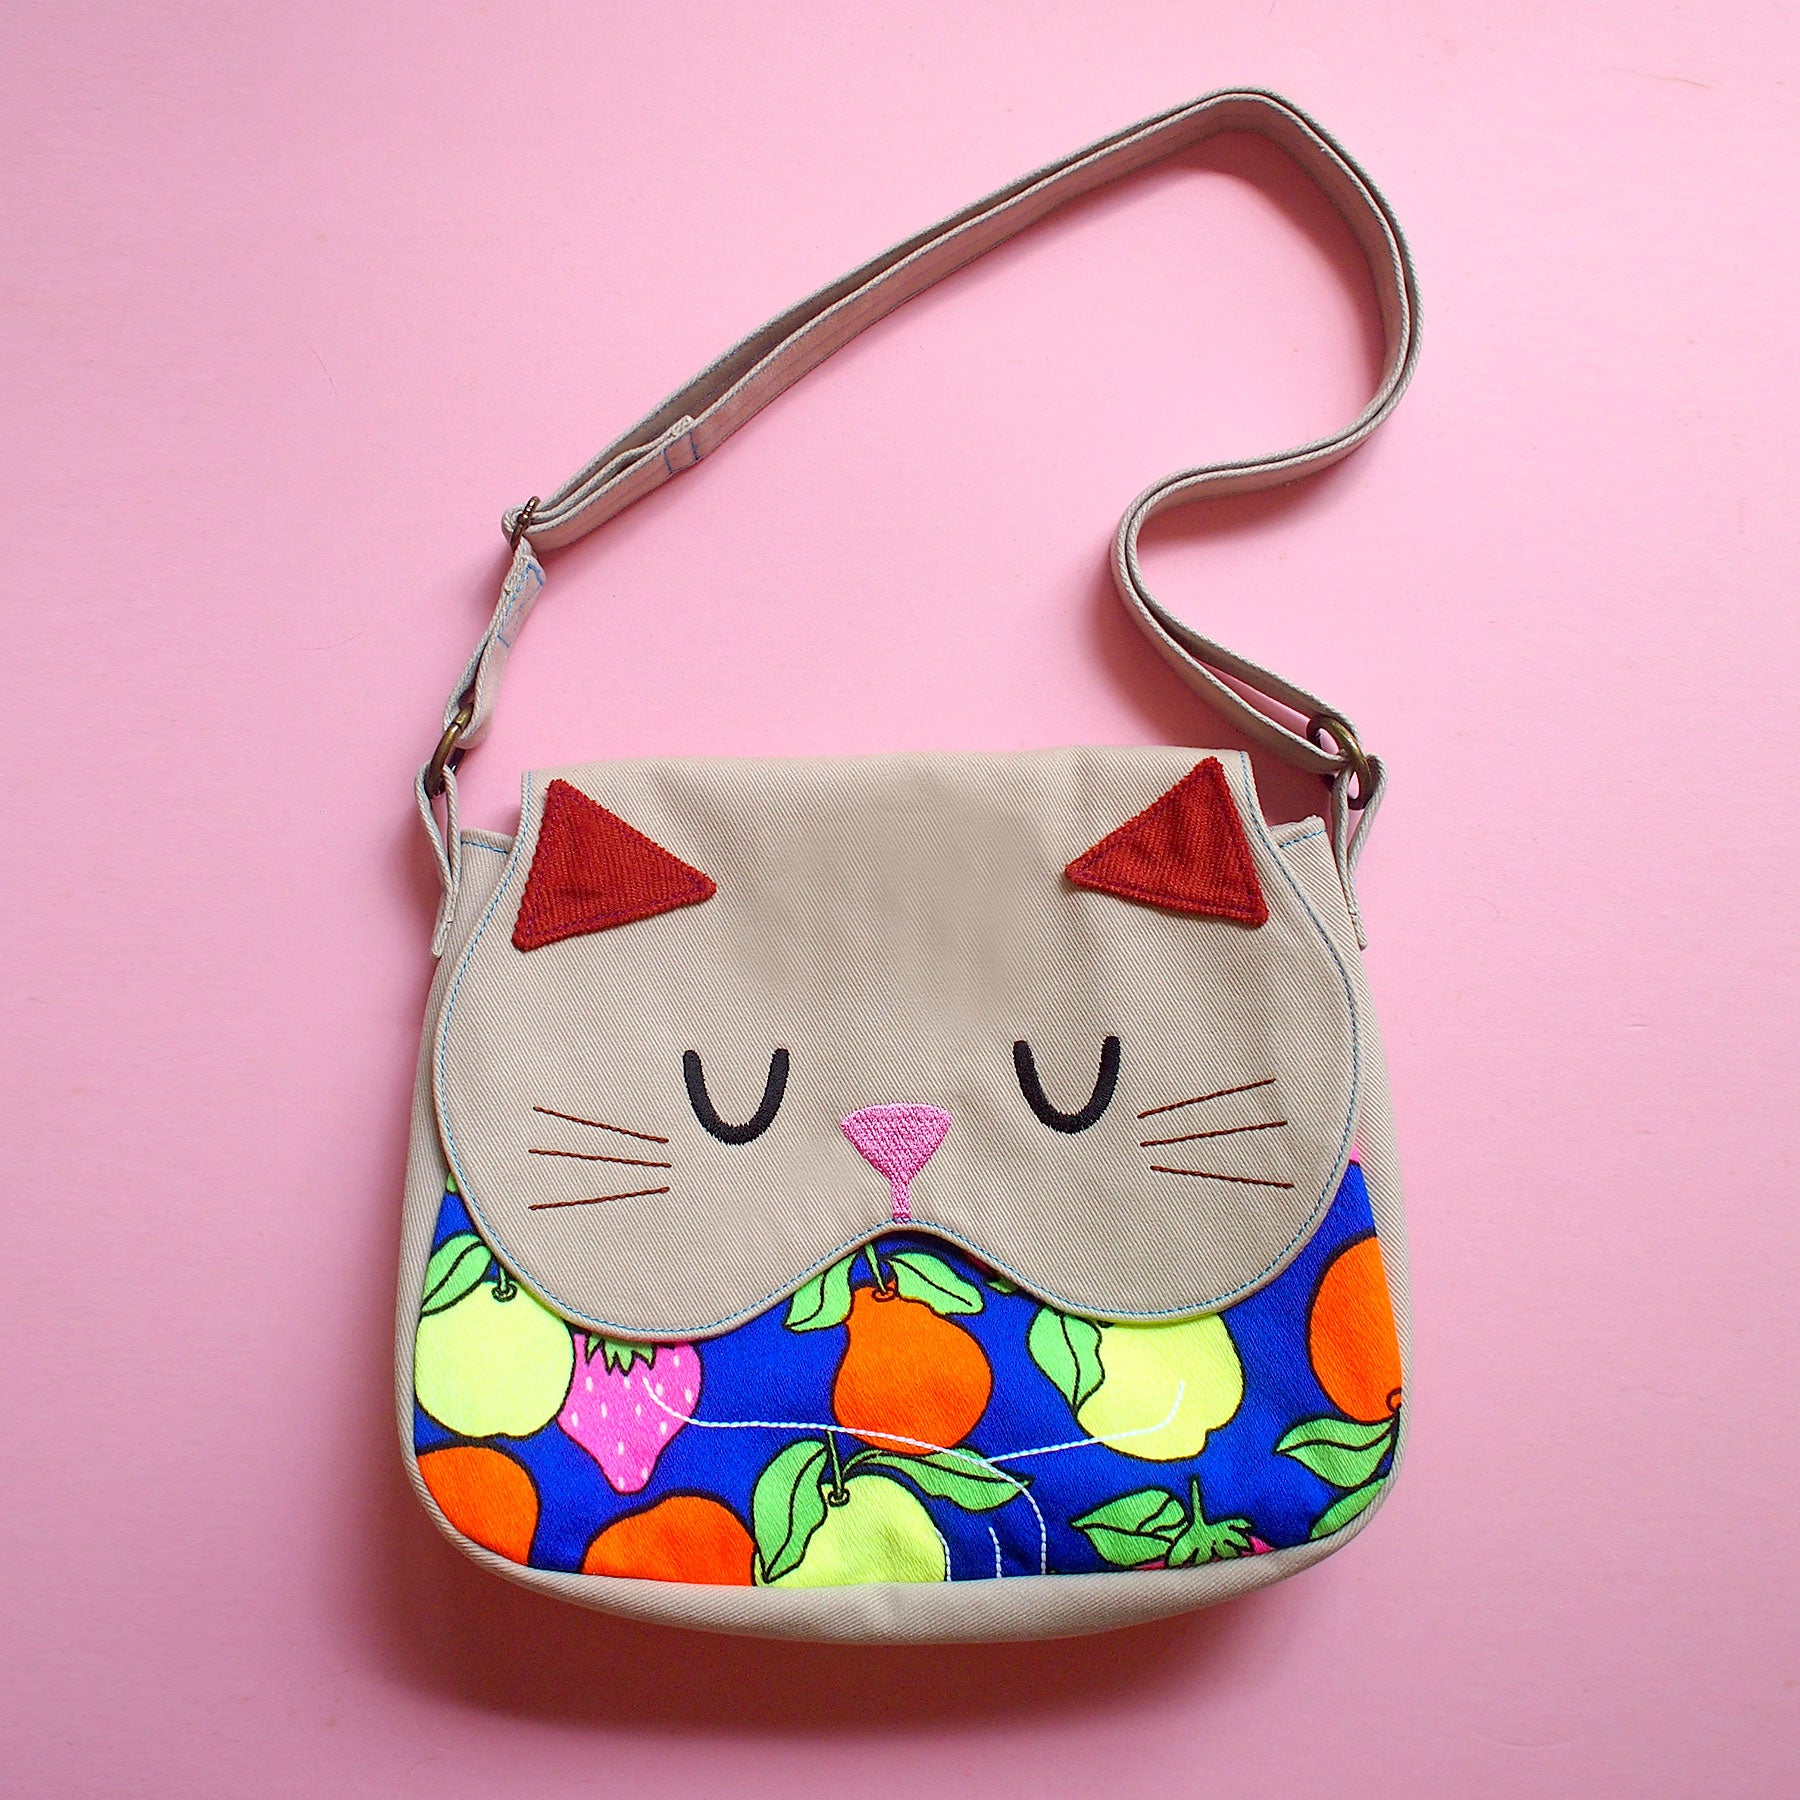 Crossbody Sling Bag - Forest Kitty Cat (Vintage Neon Fruits)